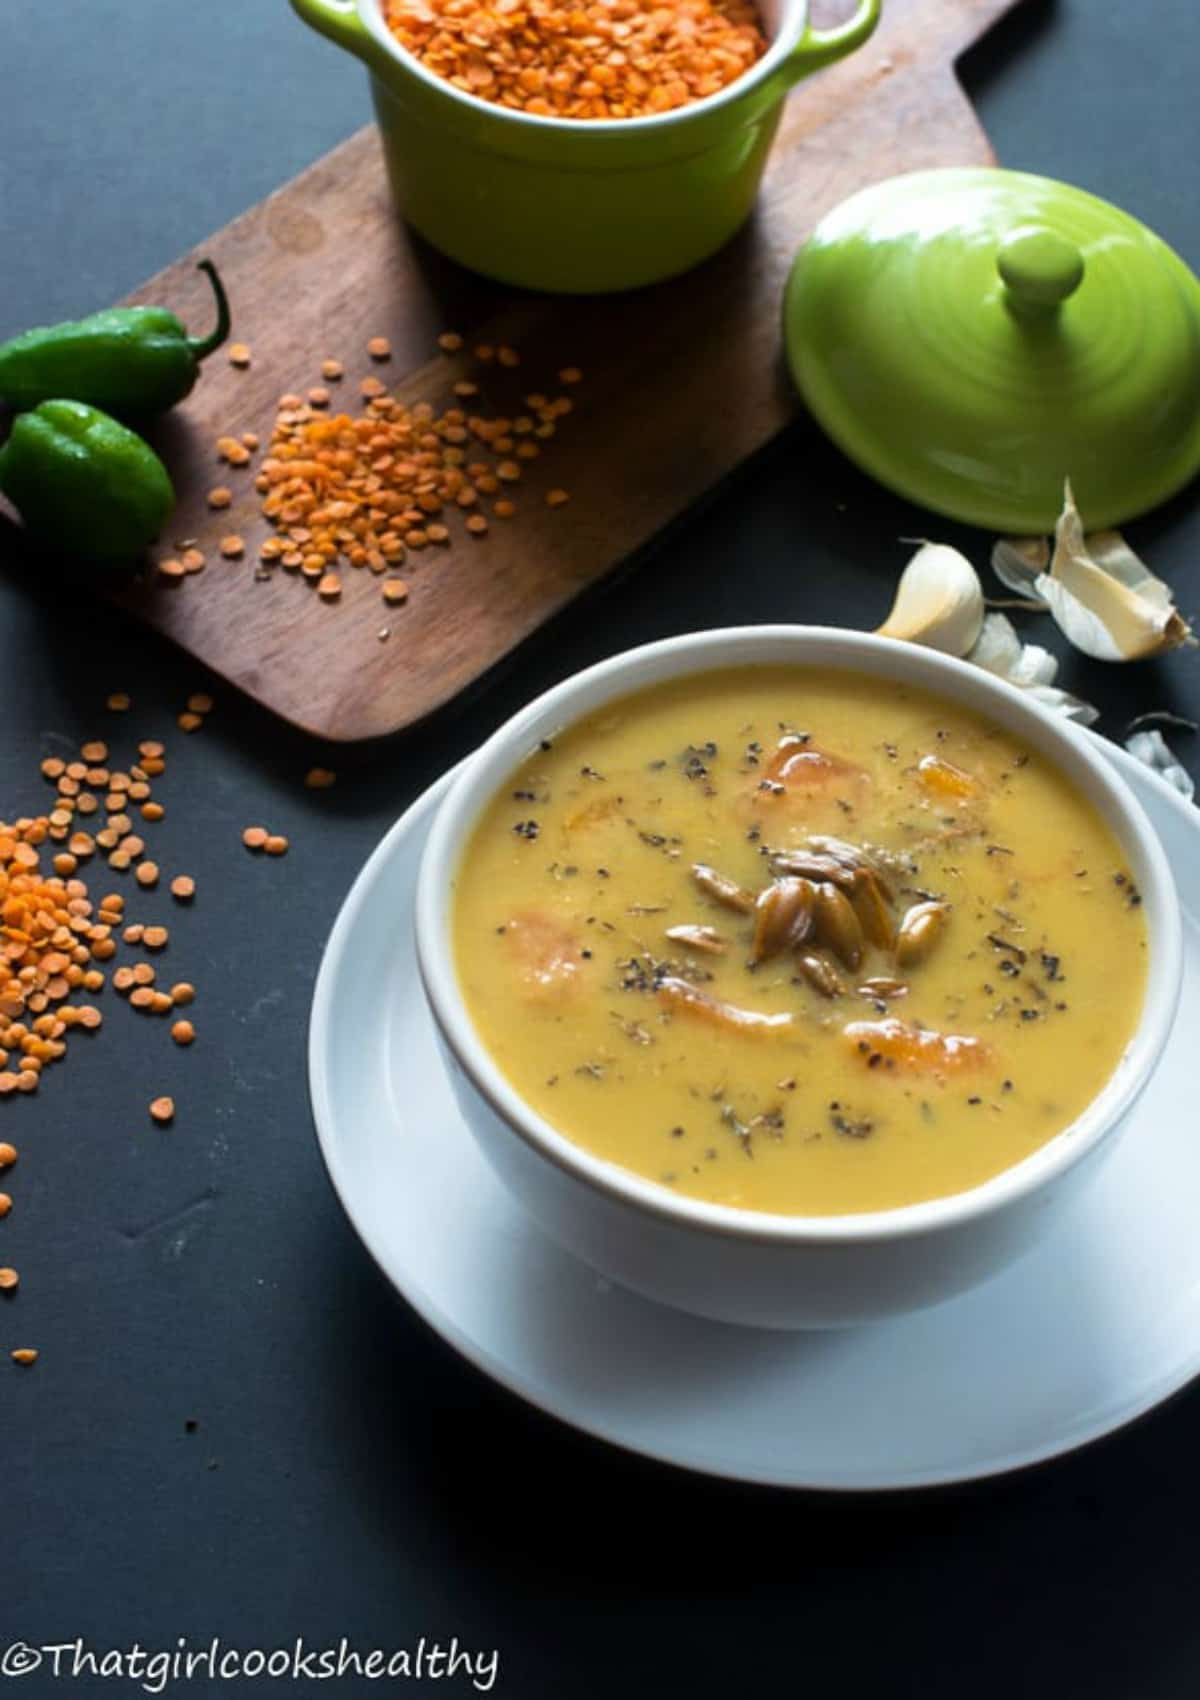 soup in a bowl with legumes around